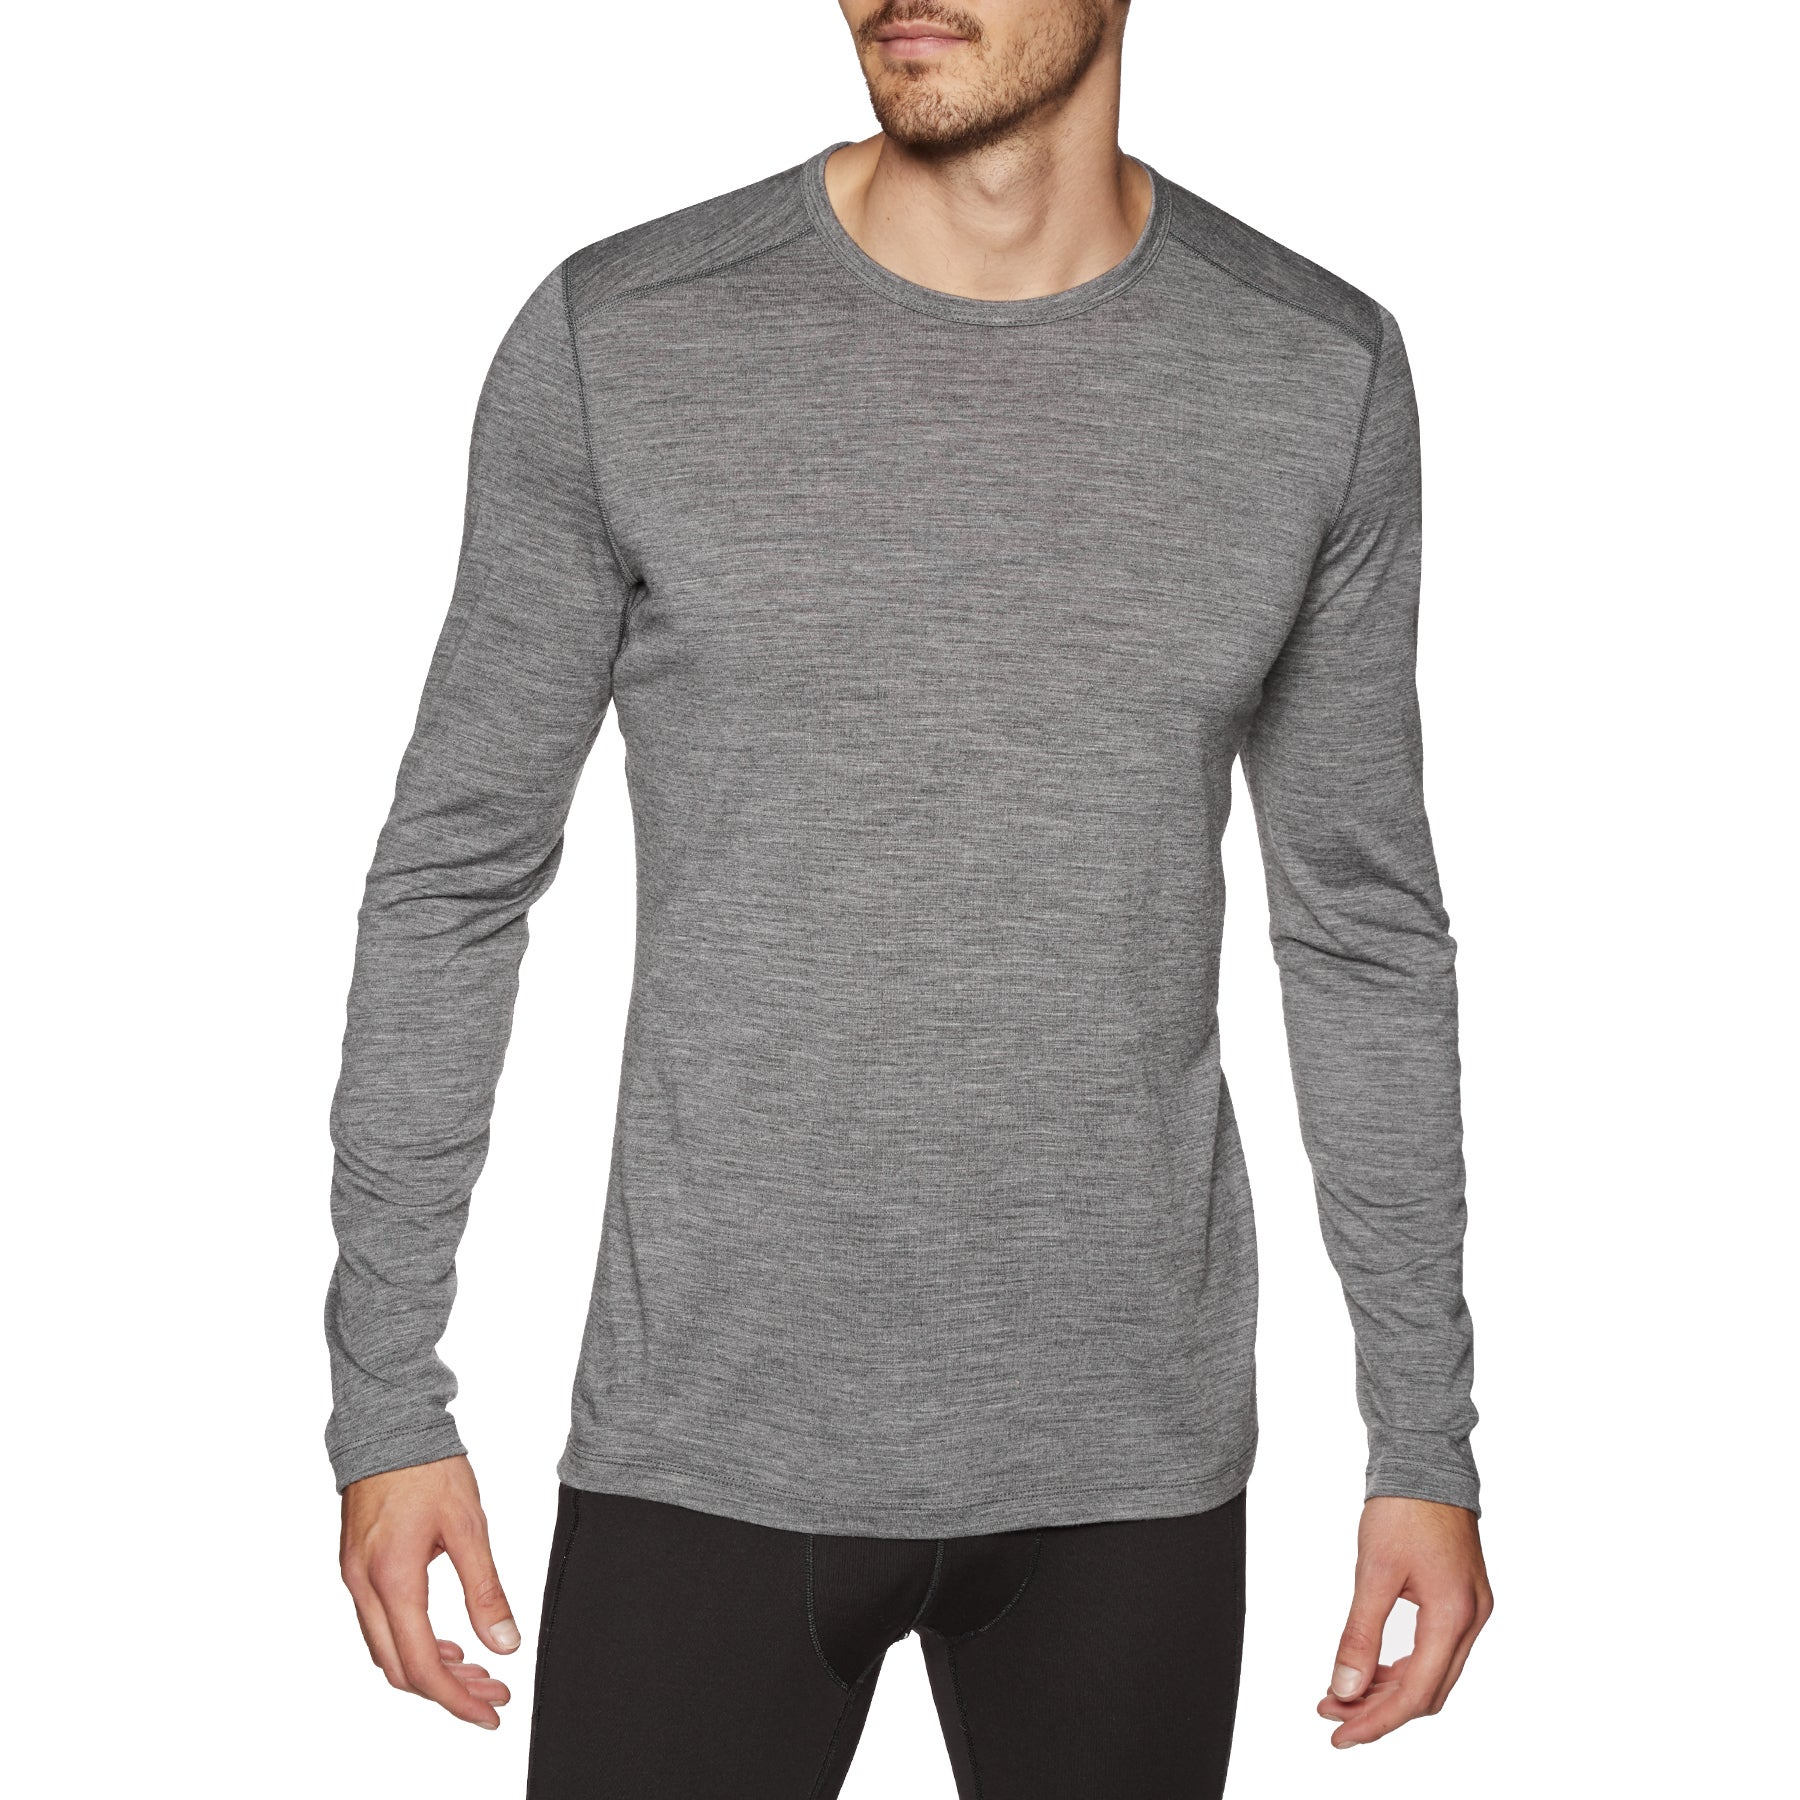 Icebreaker Mens 200 Oasis Ls Crewe Base Layer Top - Gritstone Hthr